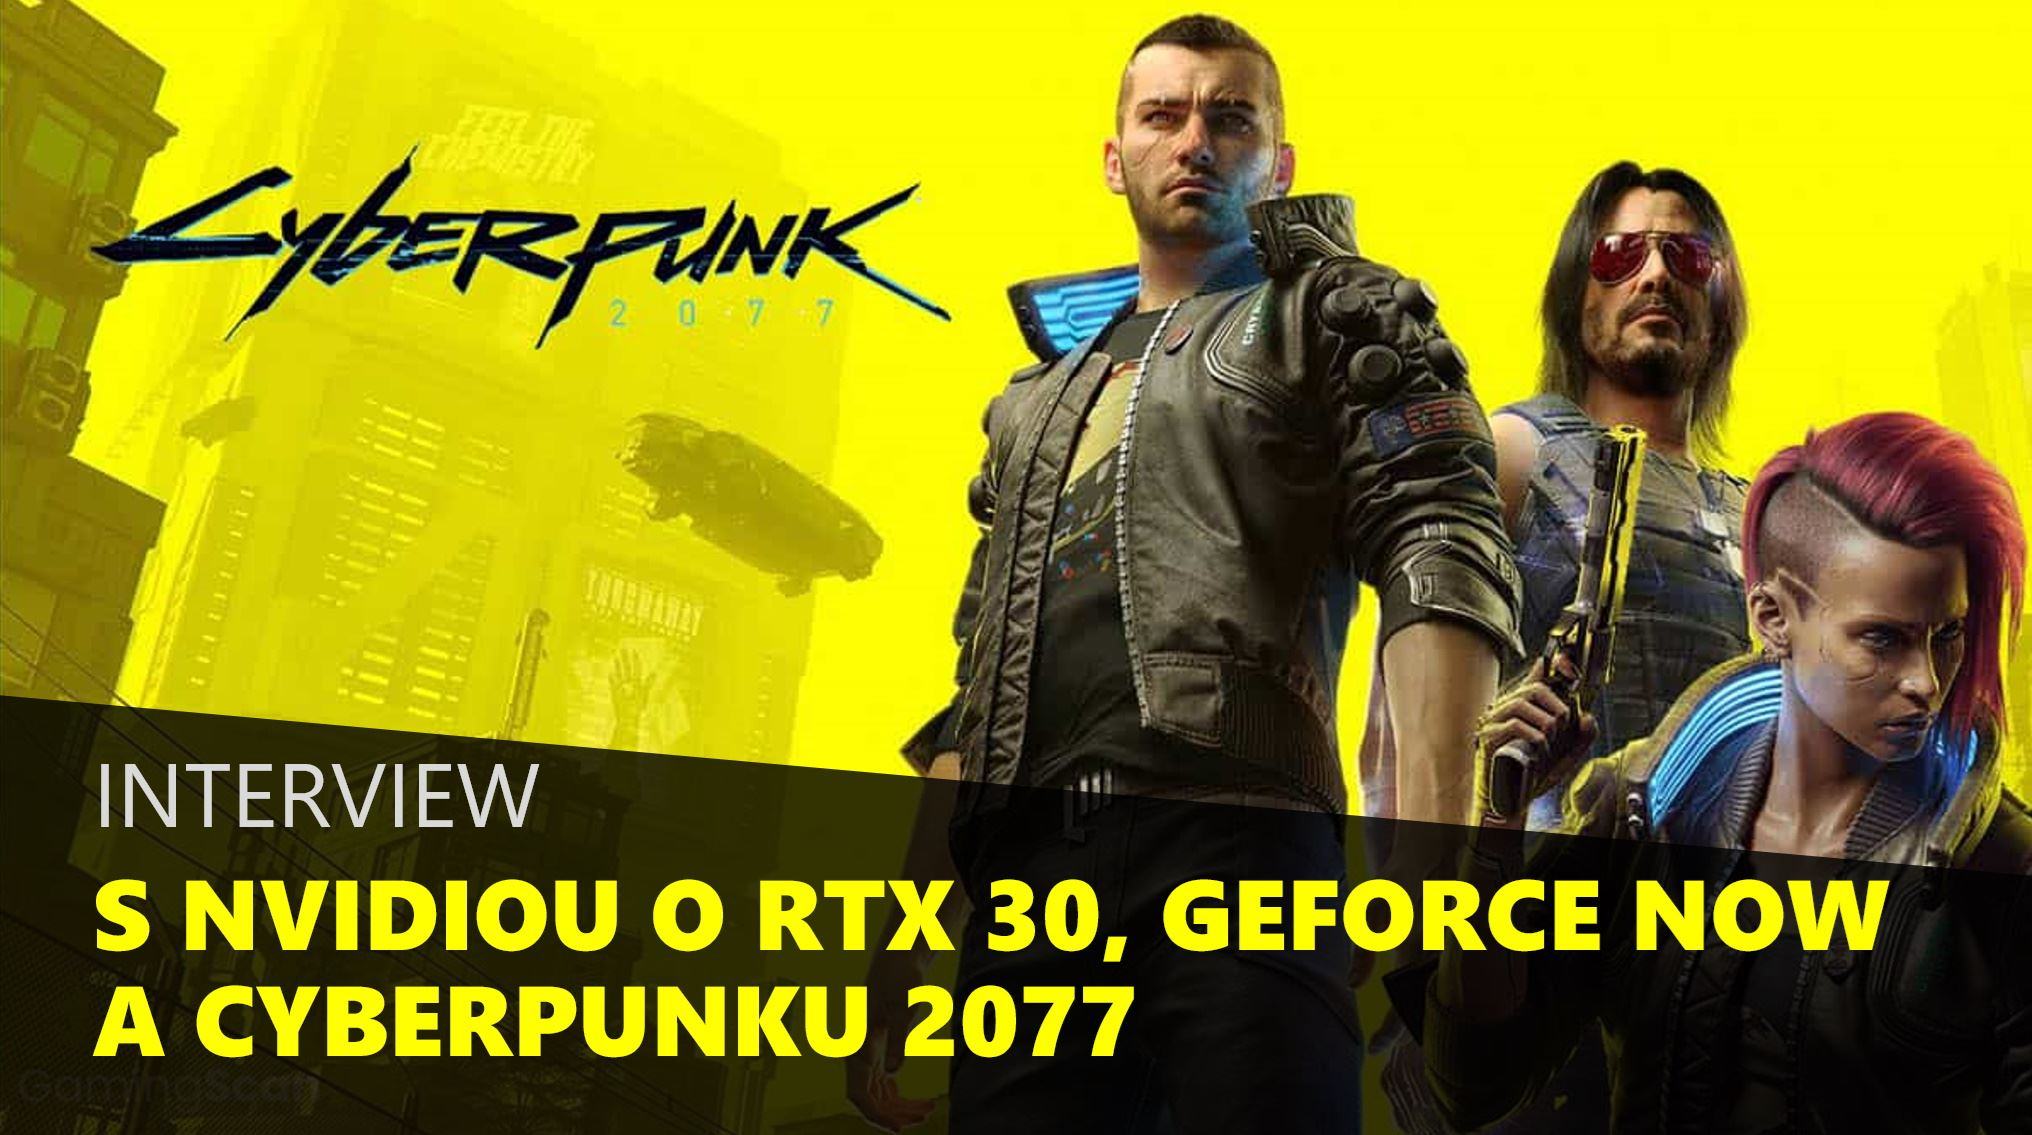 Interview s Nvidiou o Cyberpunku 2077, RTX30 kartách a aj Geforce Now